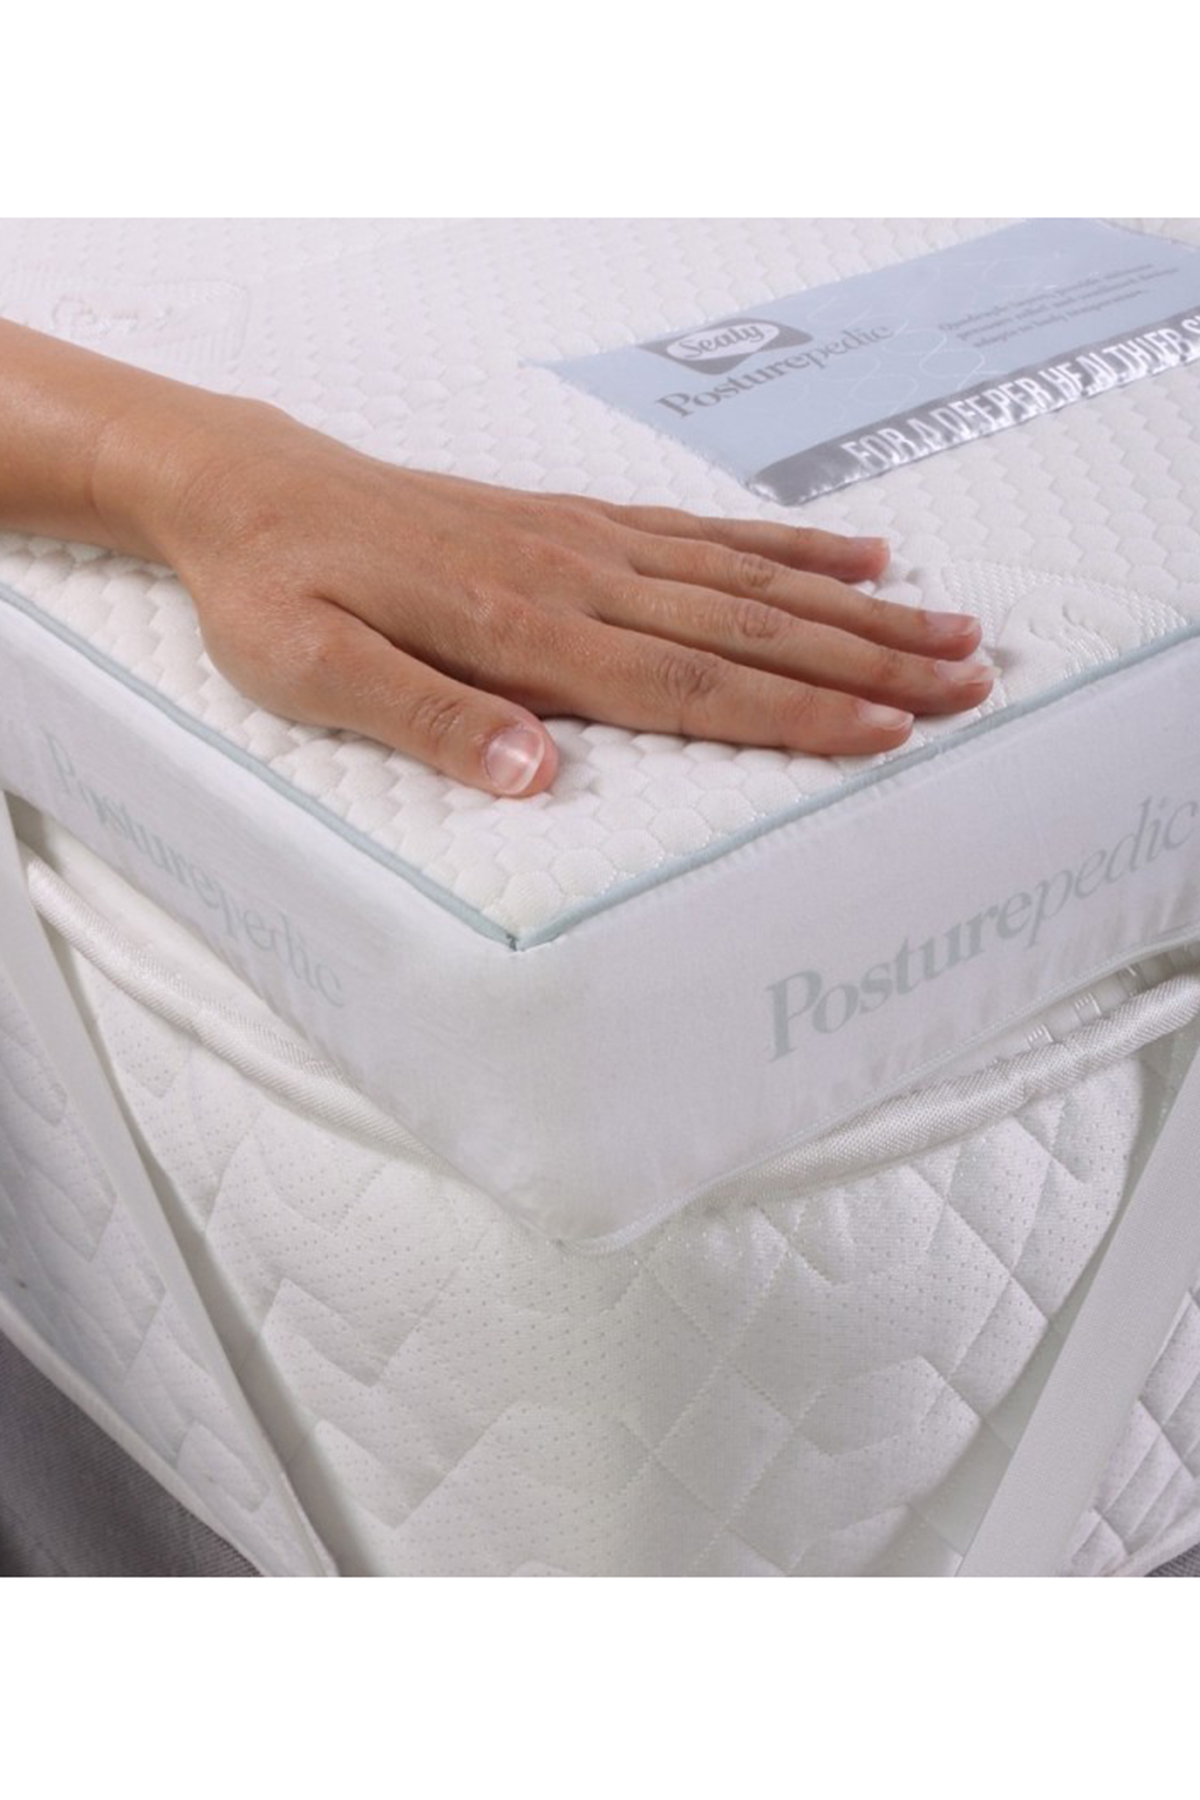 Best Mattress Toppers The Best Mattress Toppers To Buy